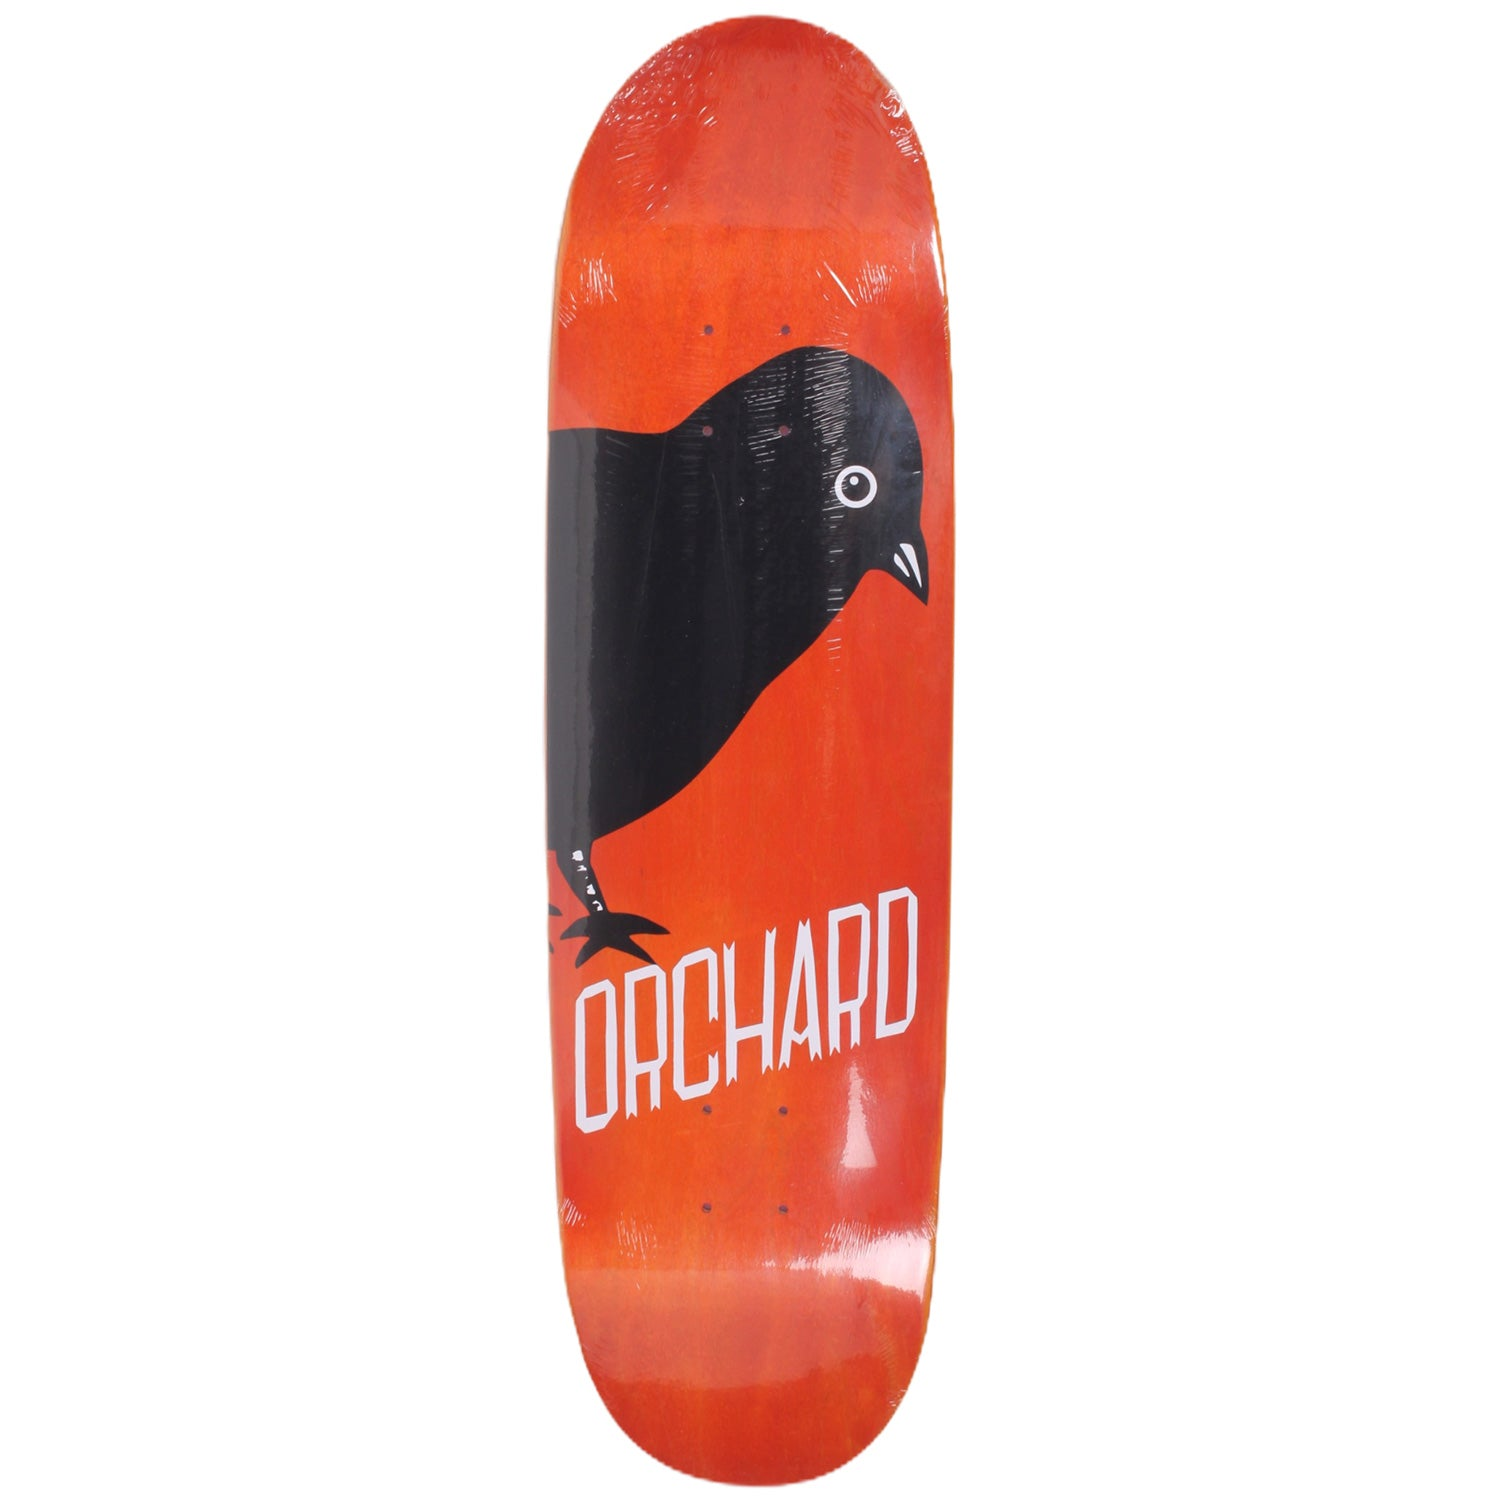 "Orchard Bird Deck 8.7"" (Baller Shape)"